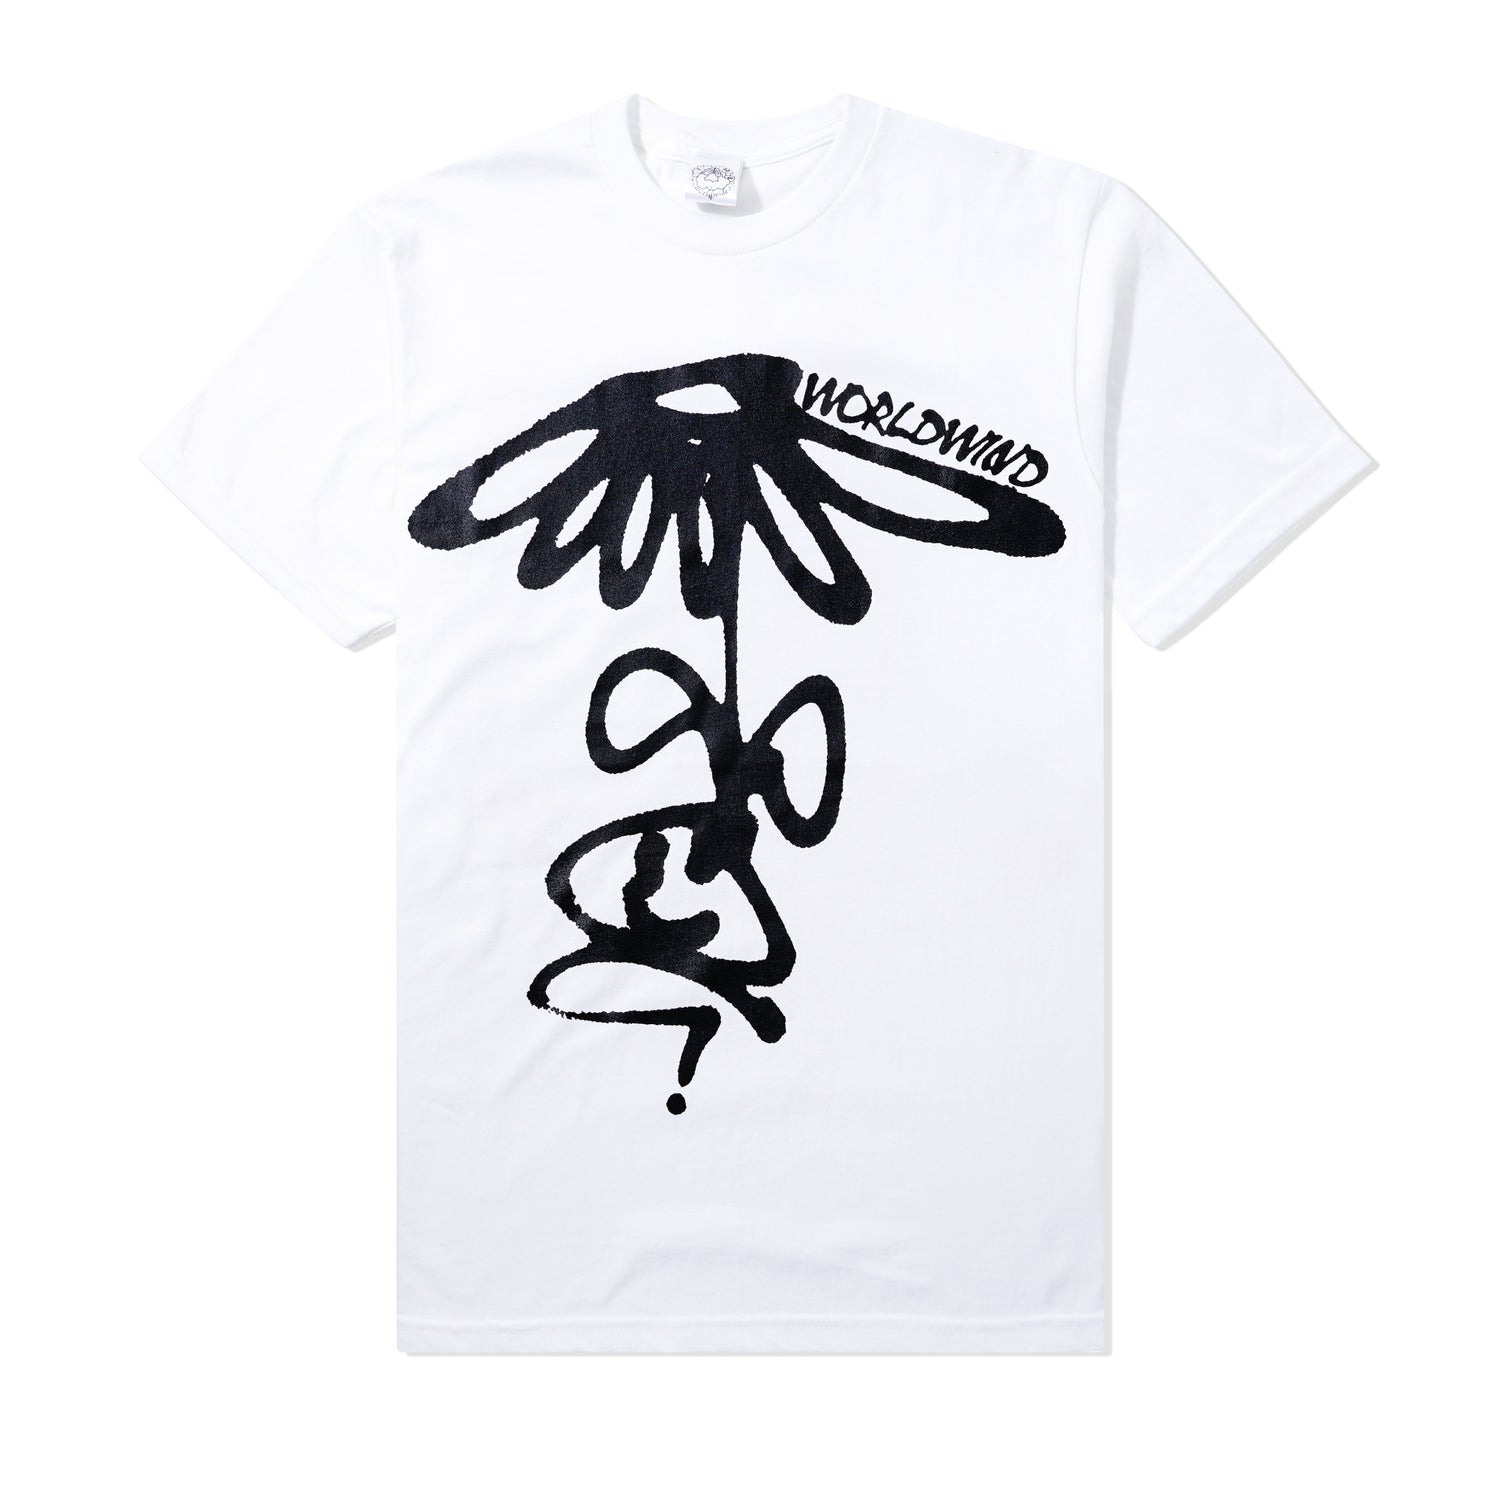 Grow Up-Side Down Tee, White